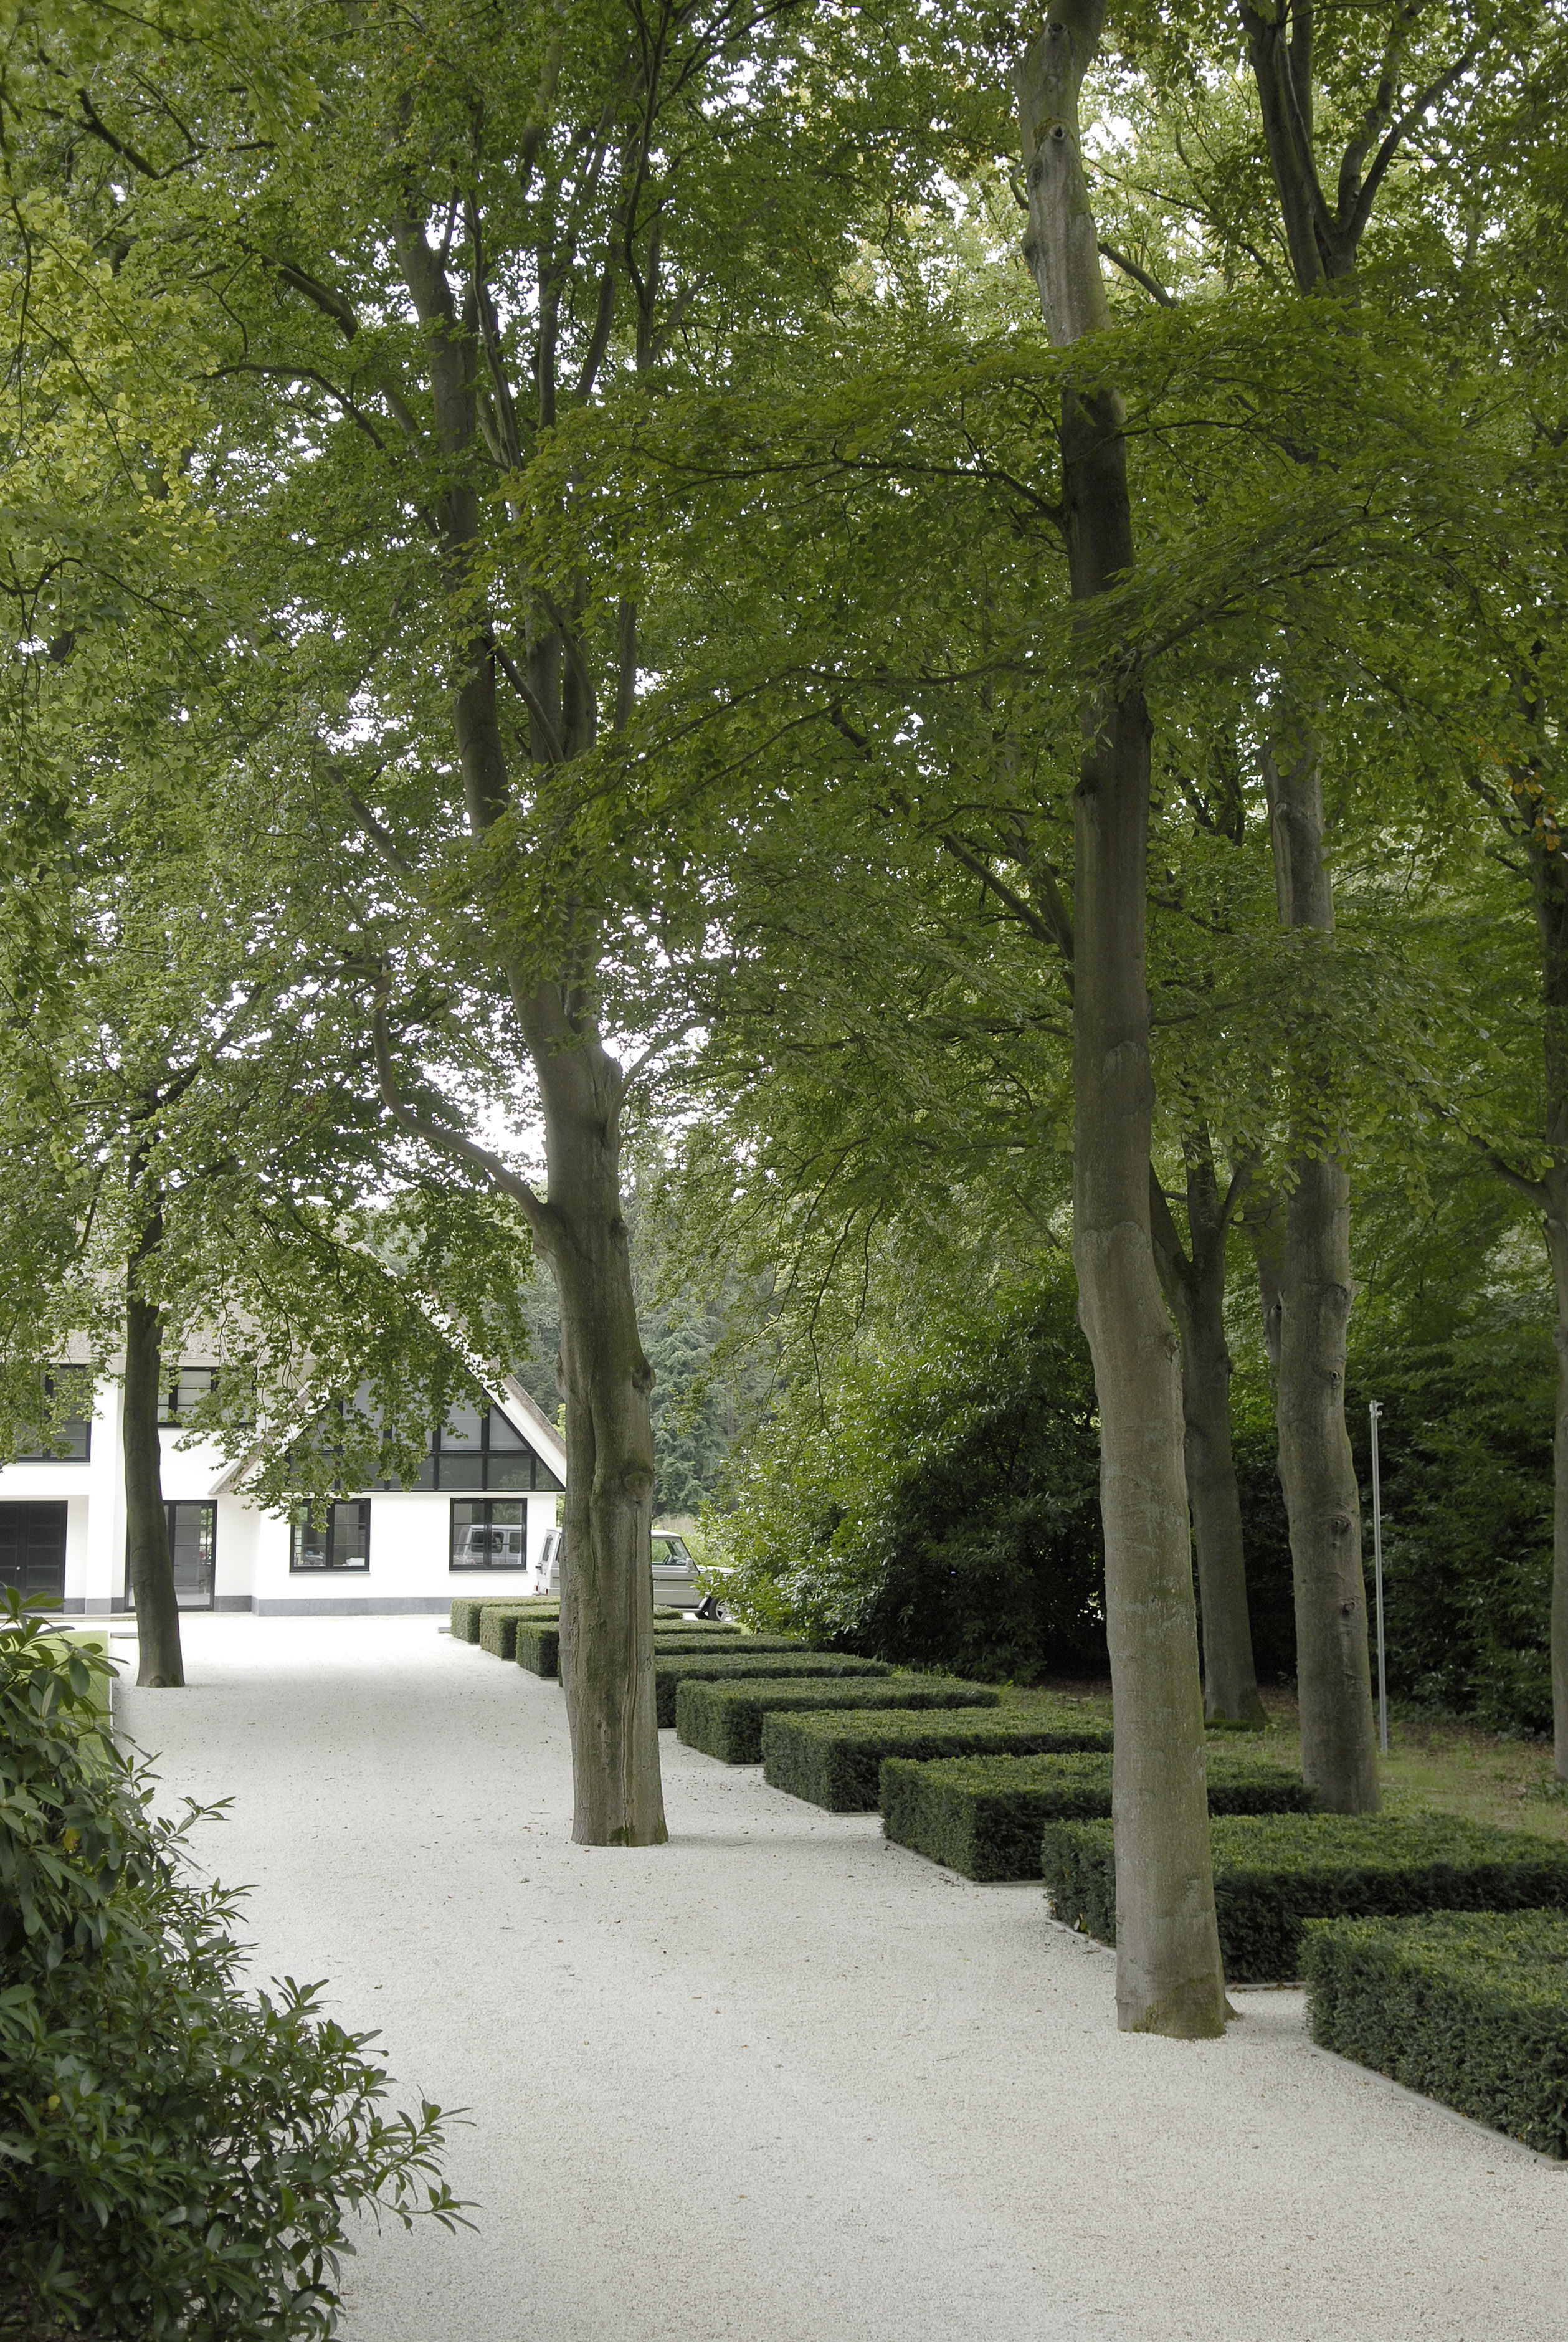 Modern garden architecture emphasising the robust character of the old forest  | Andrew van Egmond